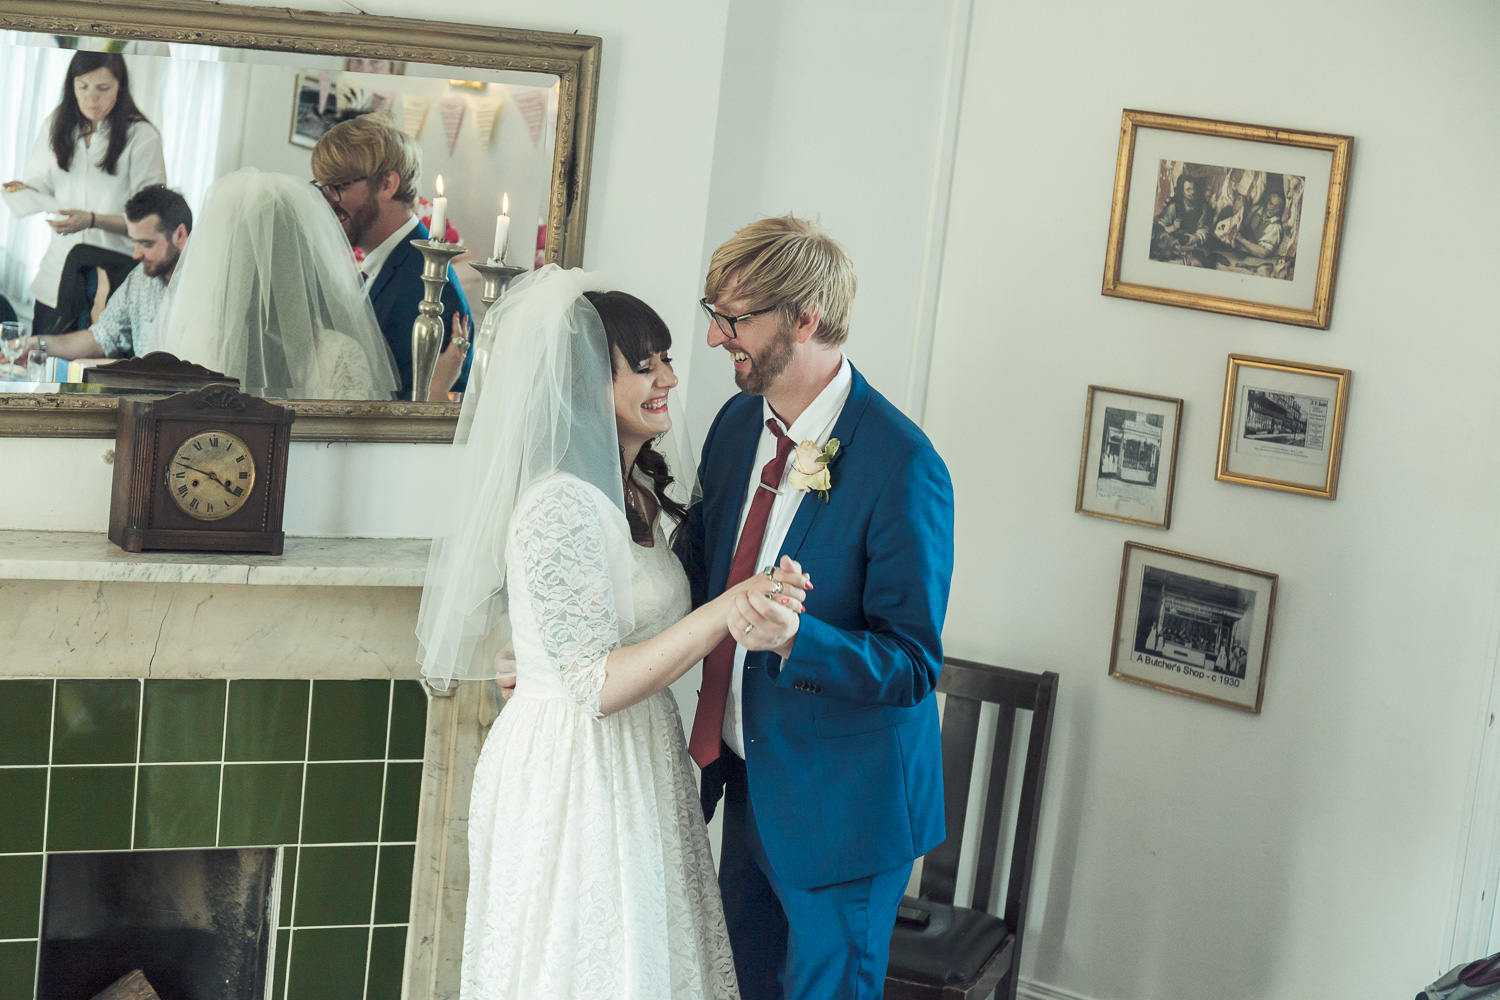 burgh-house-hampstead-north-london-wedding-0310.jpg